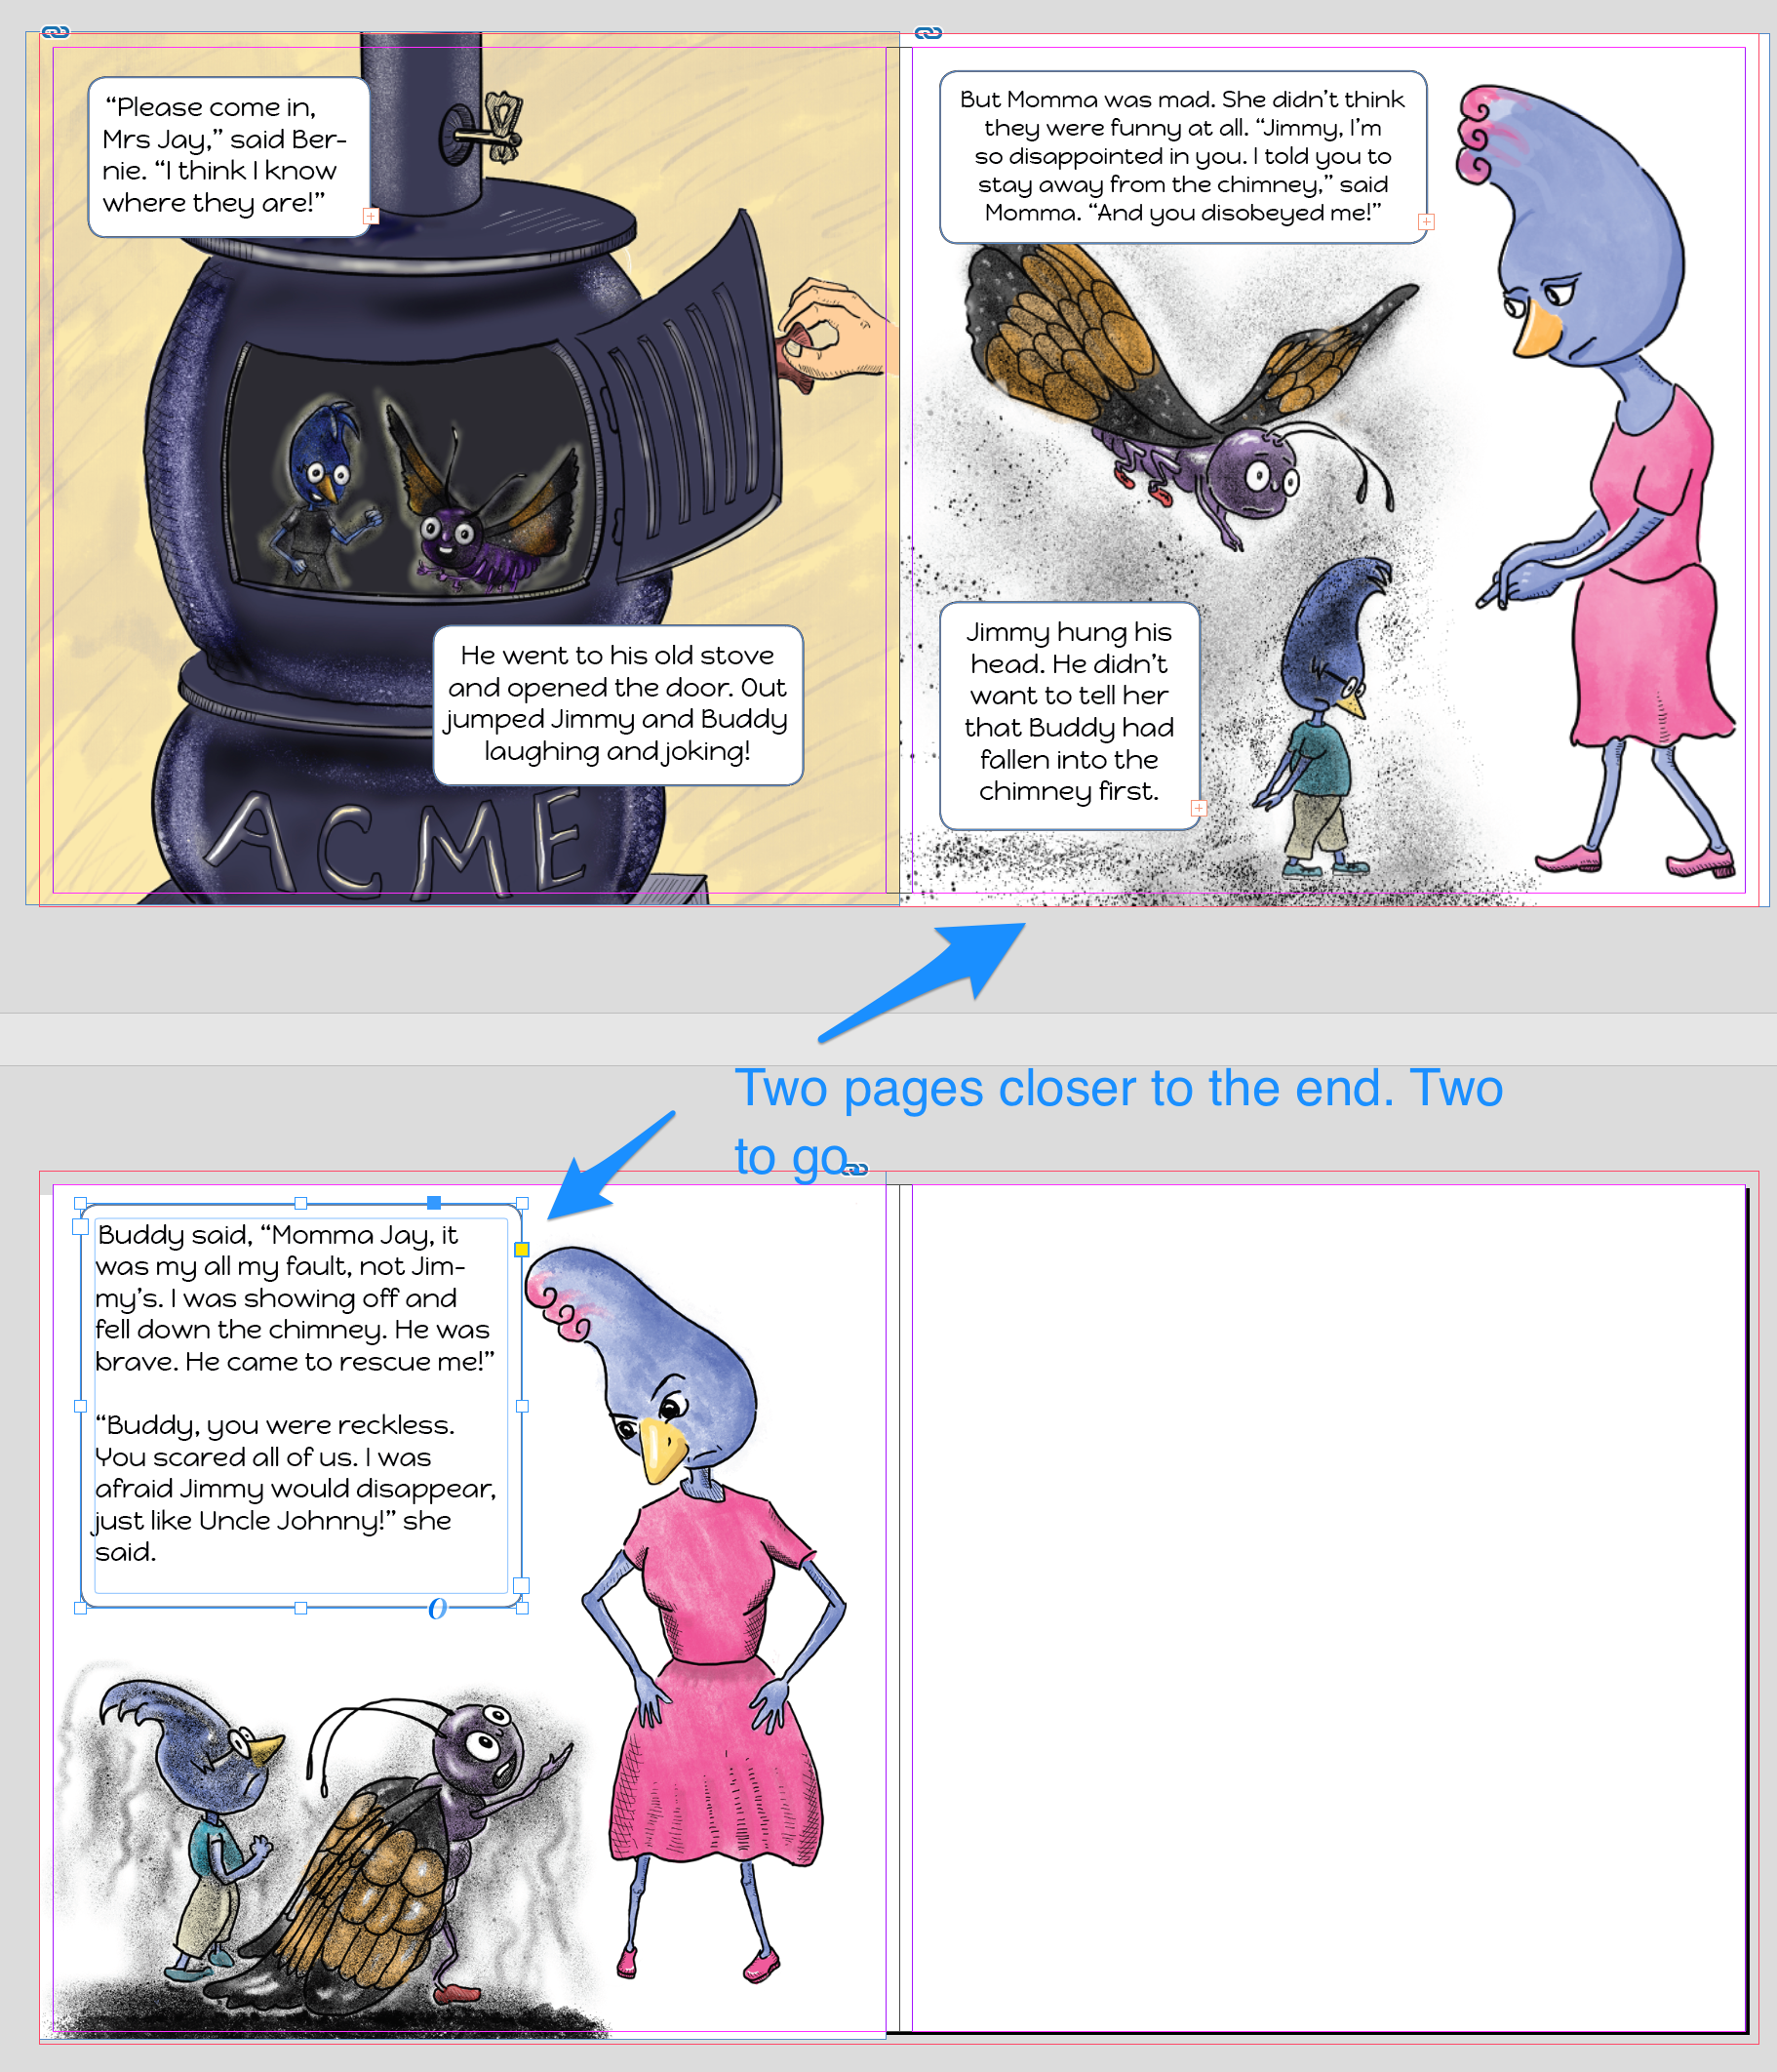 two_pages_to_go_blog.png InDesign, screenshot, overview, children's picture book